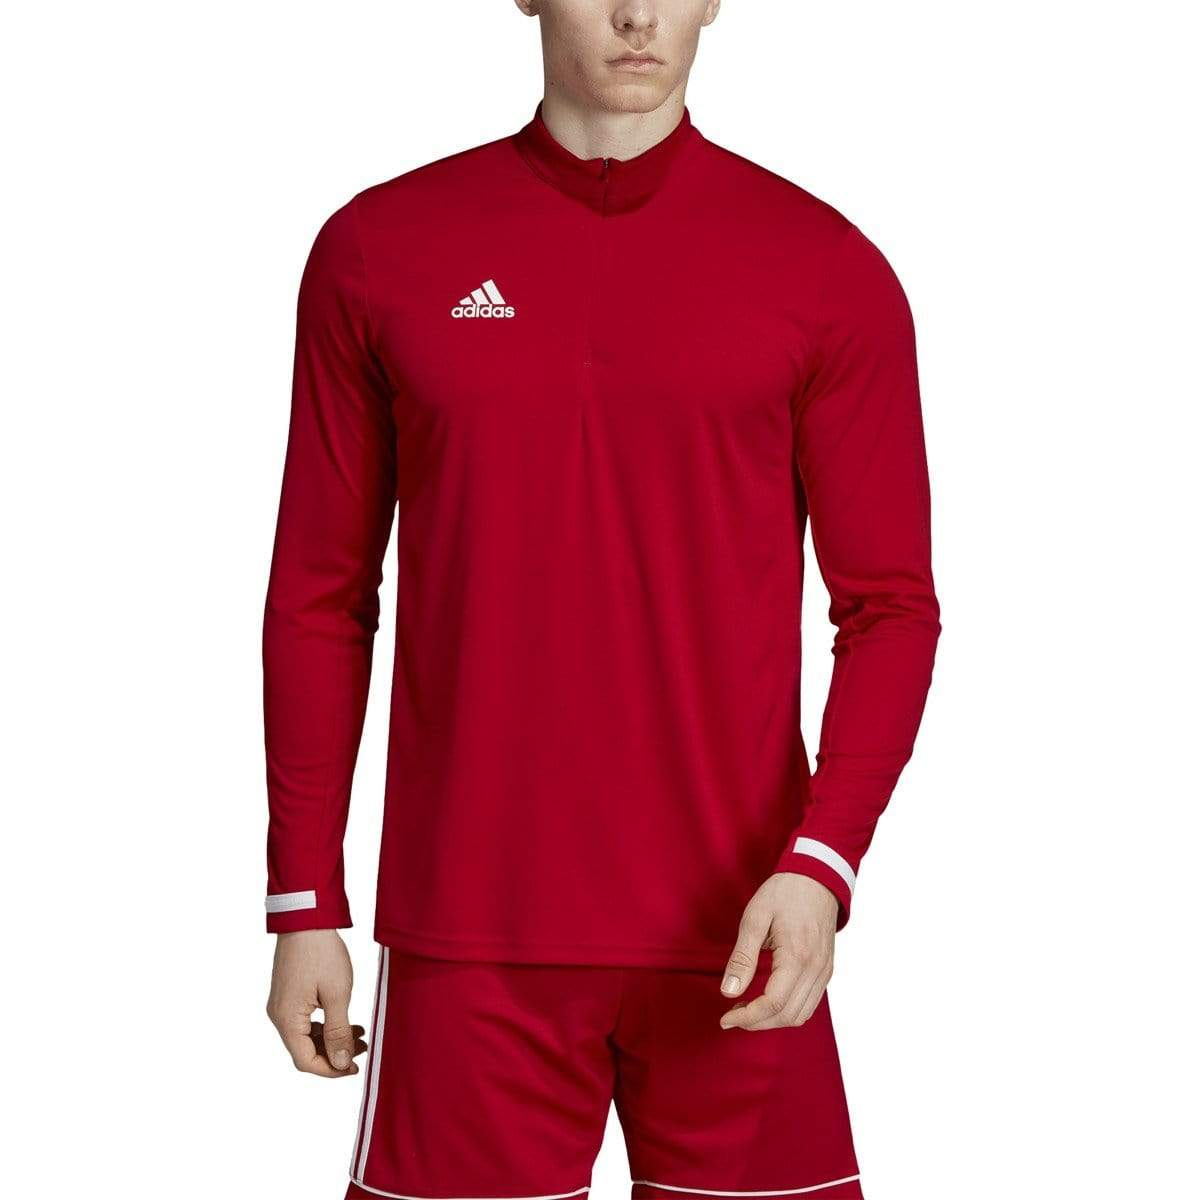 adidas Activewear S / Red Adidas - Men's Team 19 Long Sleeve 1/4 Zip